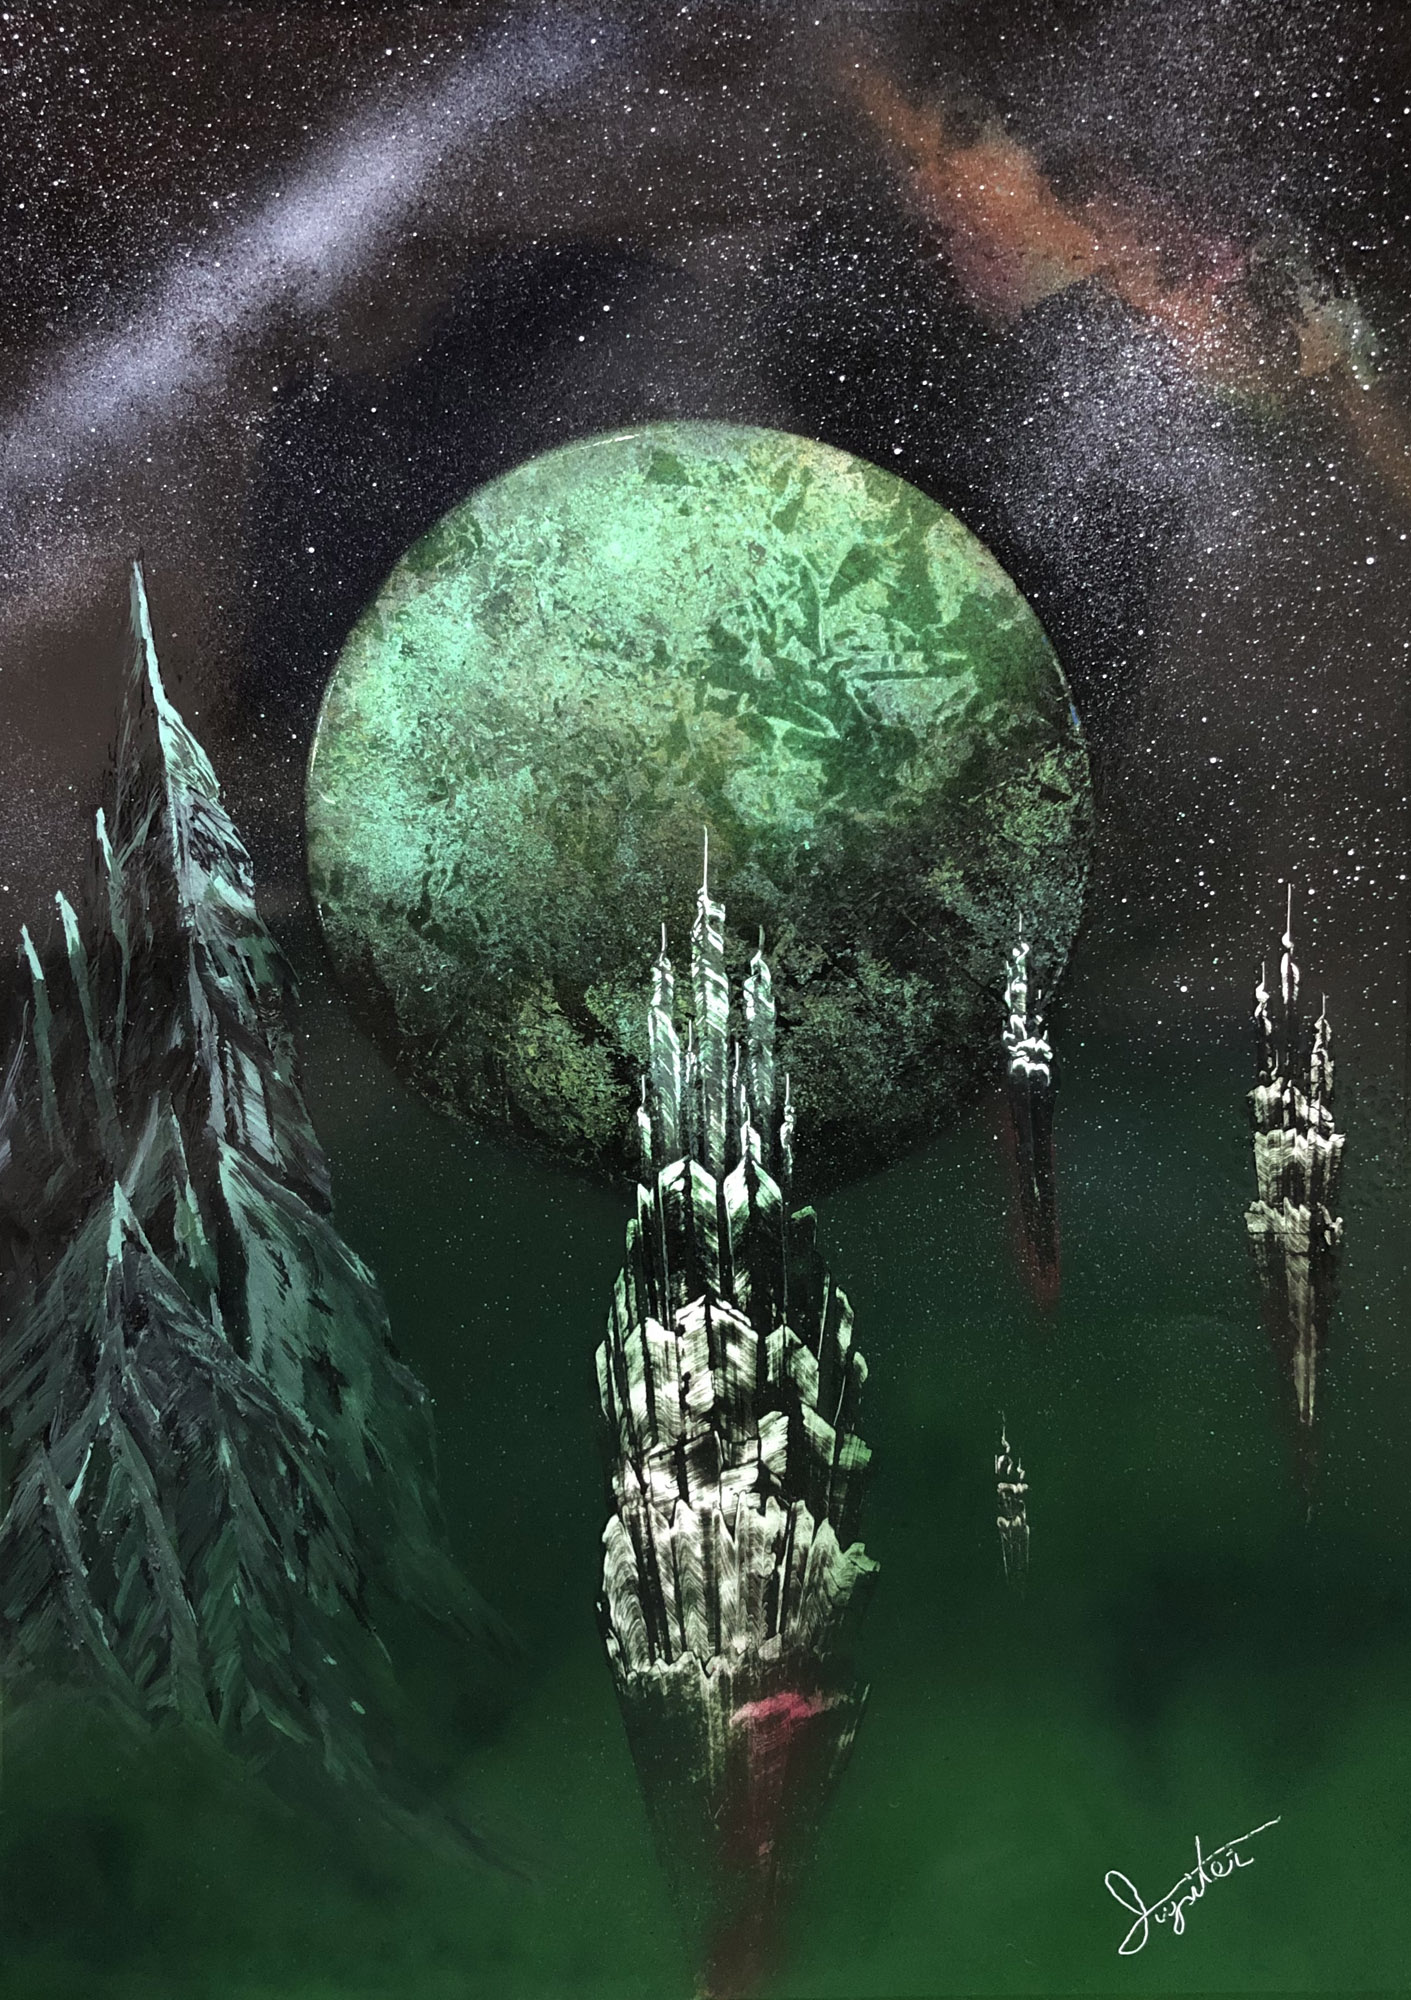 green planet and the aeropolice